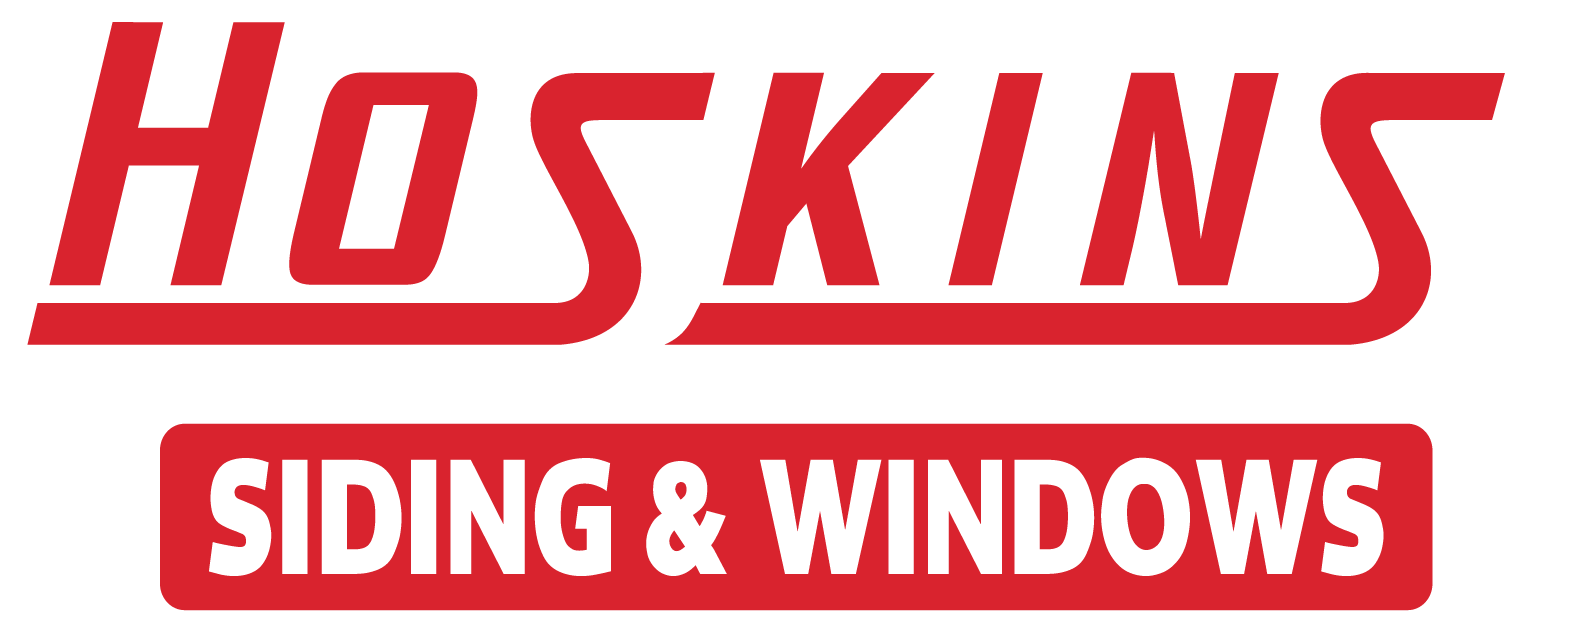 Hoskins Siding & Windows